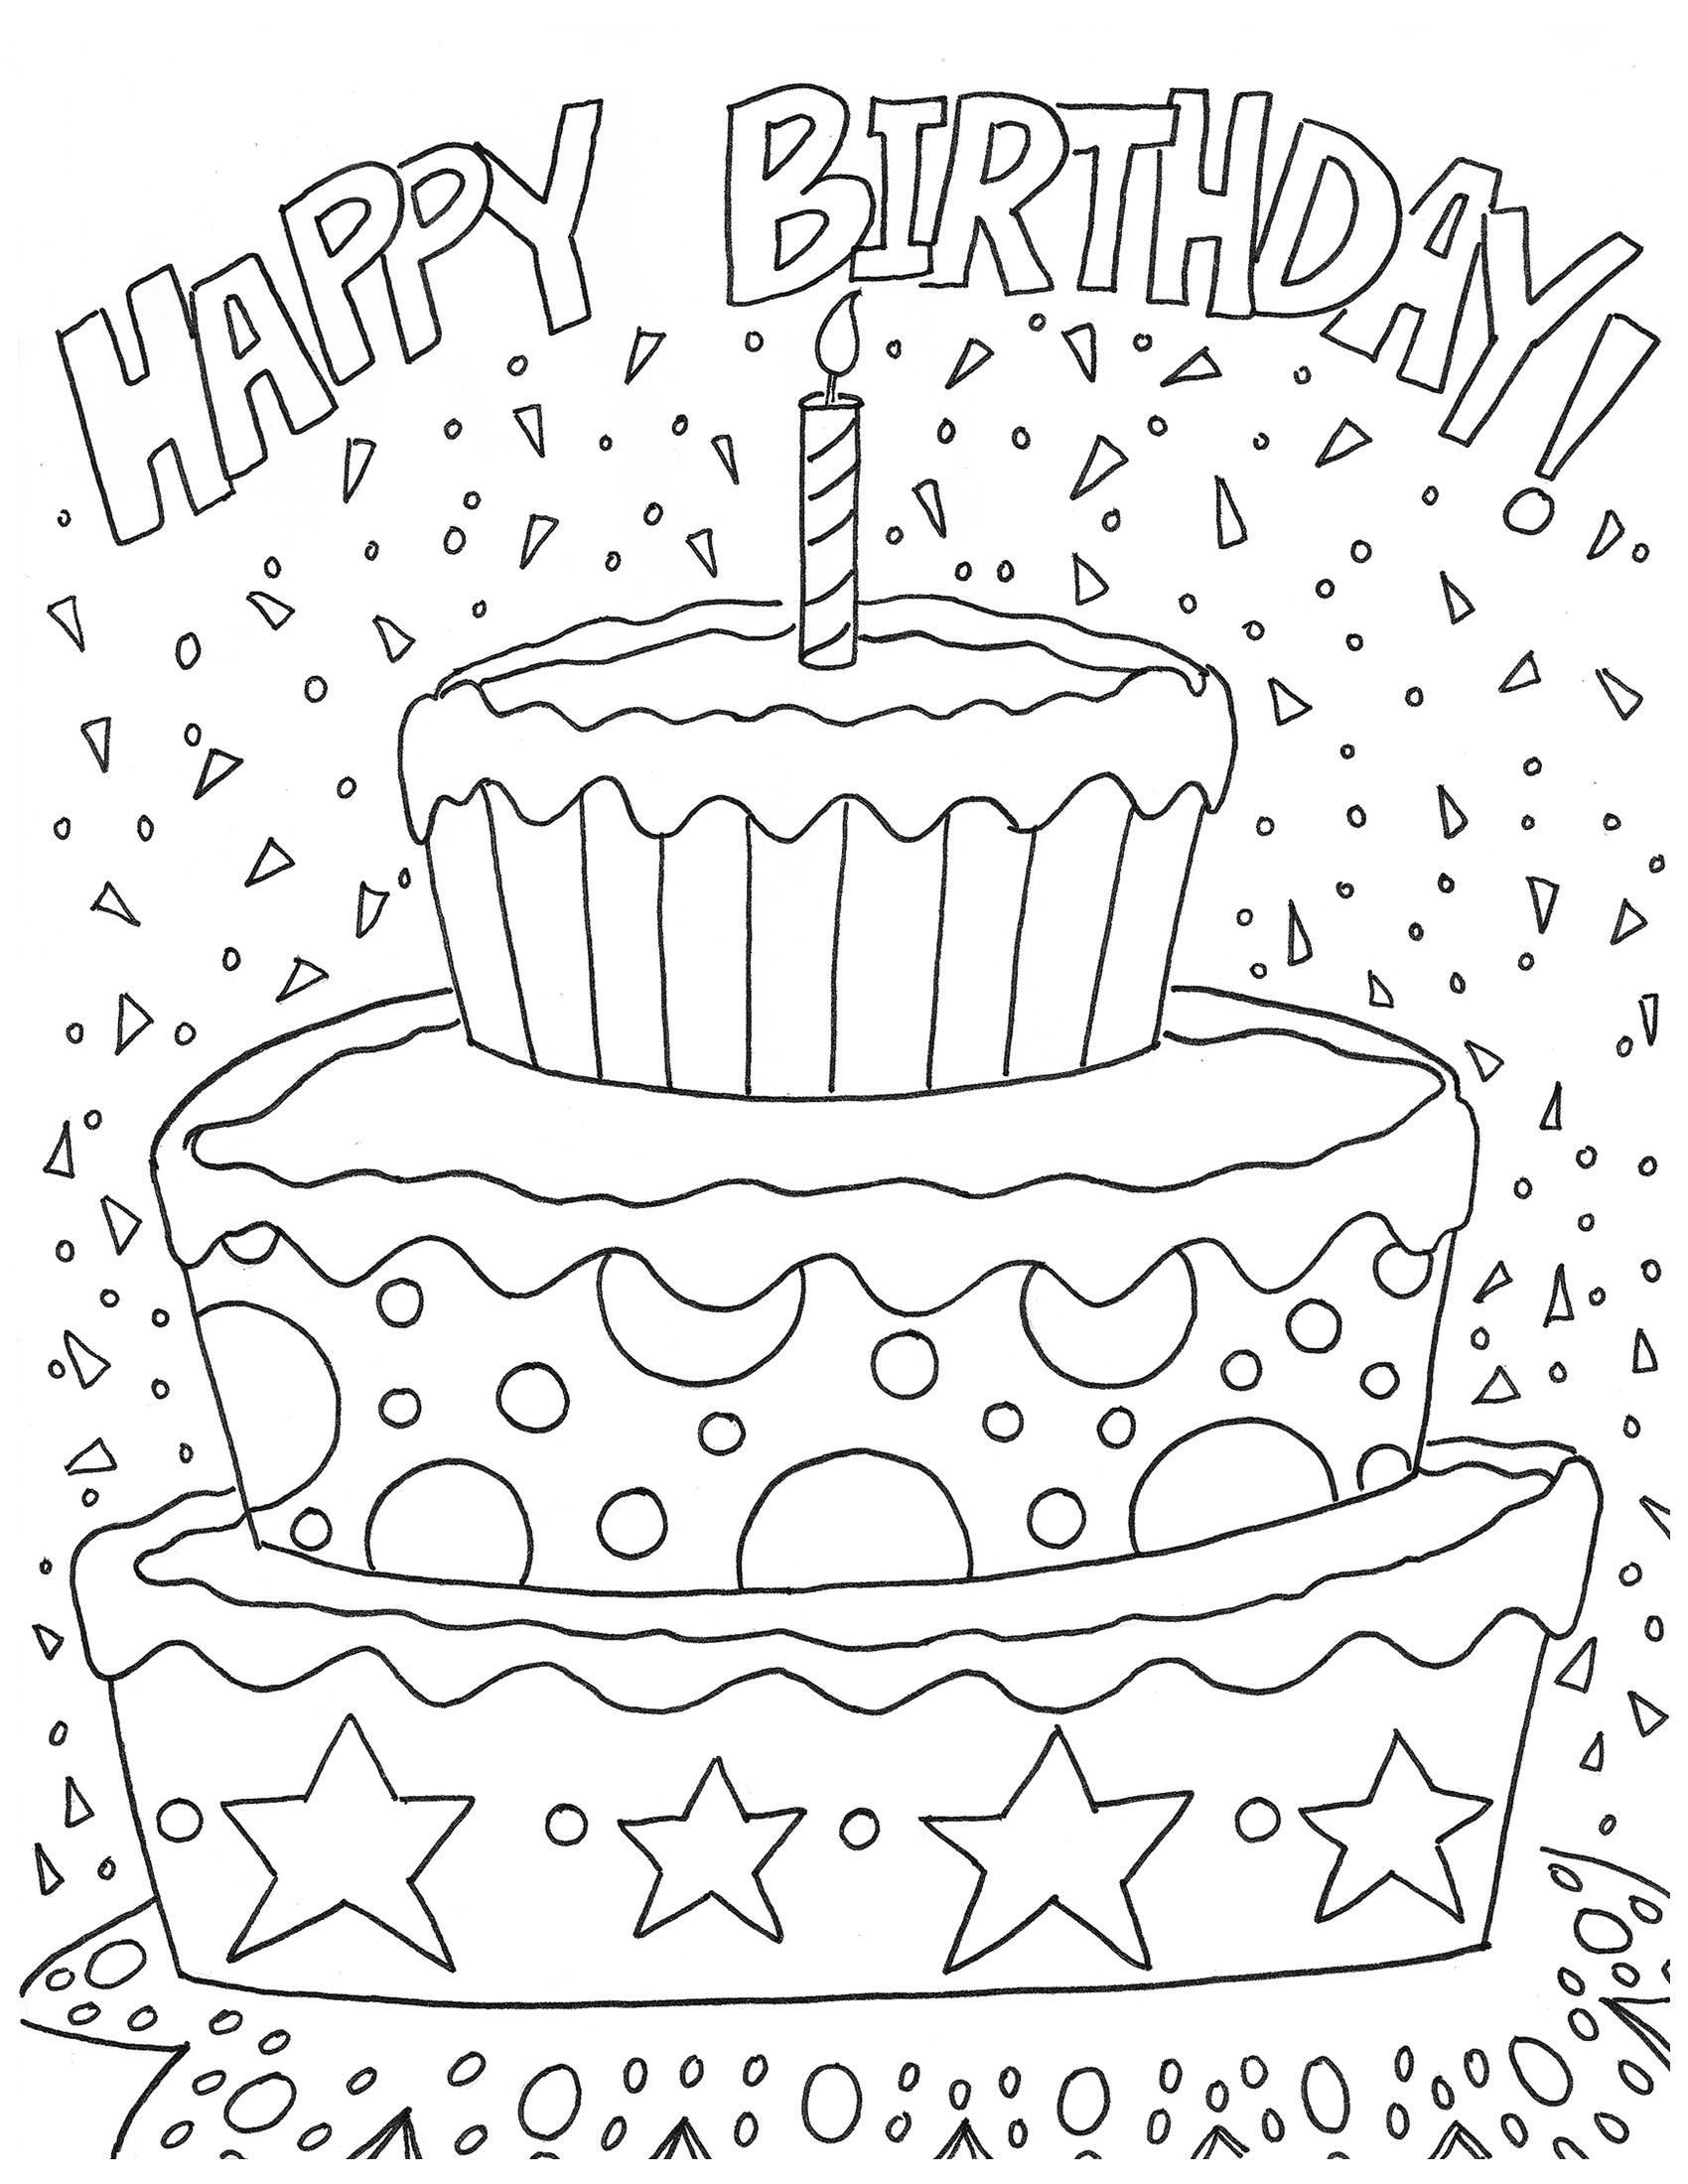 happy birthday mom pictures to color ; coloring-sheet-happy-birthday-download-of-happy-birthday-mom-coloring-pages